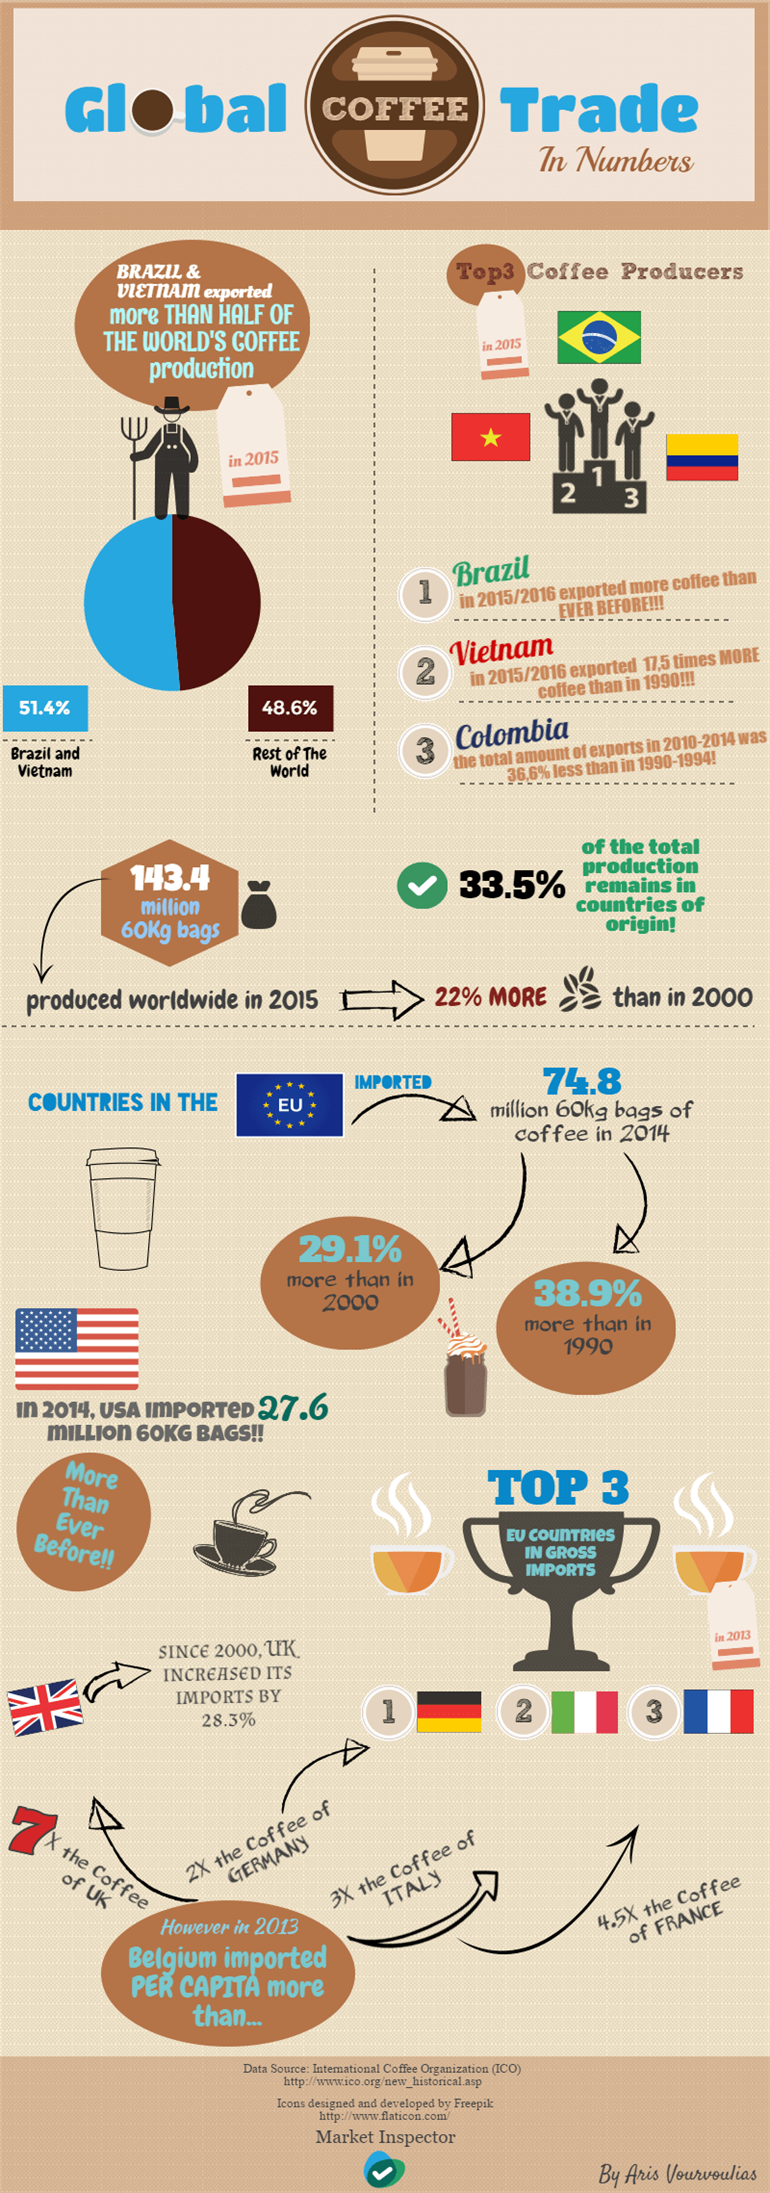 The Global Coffee Trade in Numbers by Market Inspector